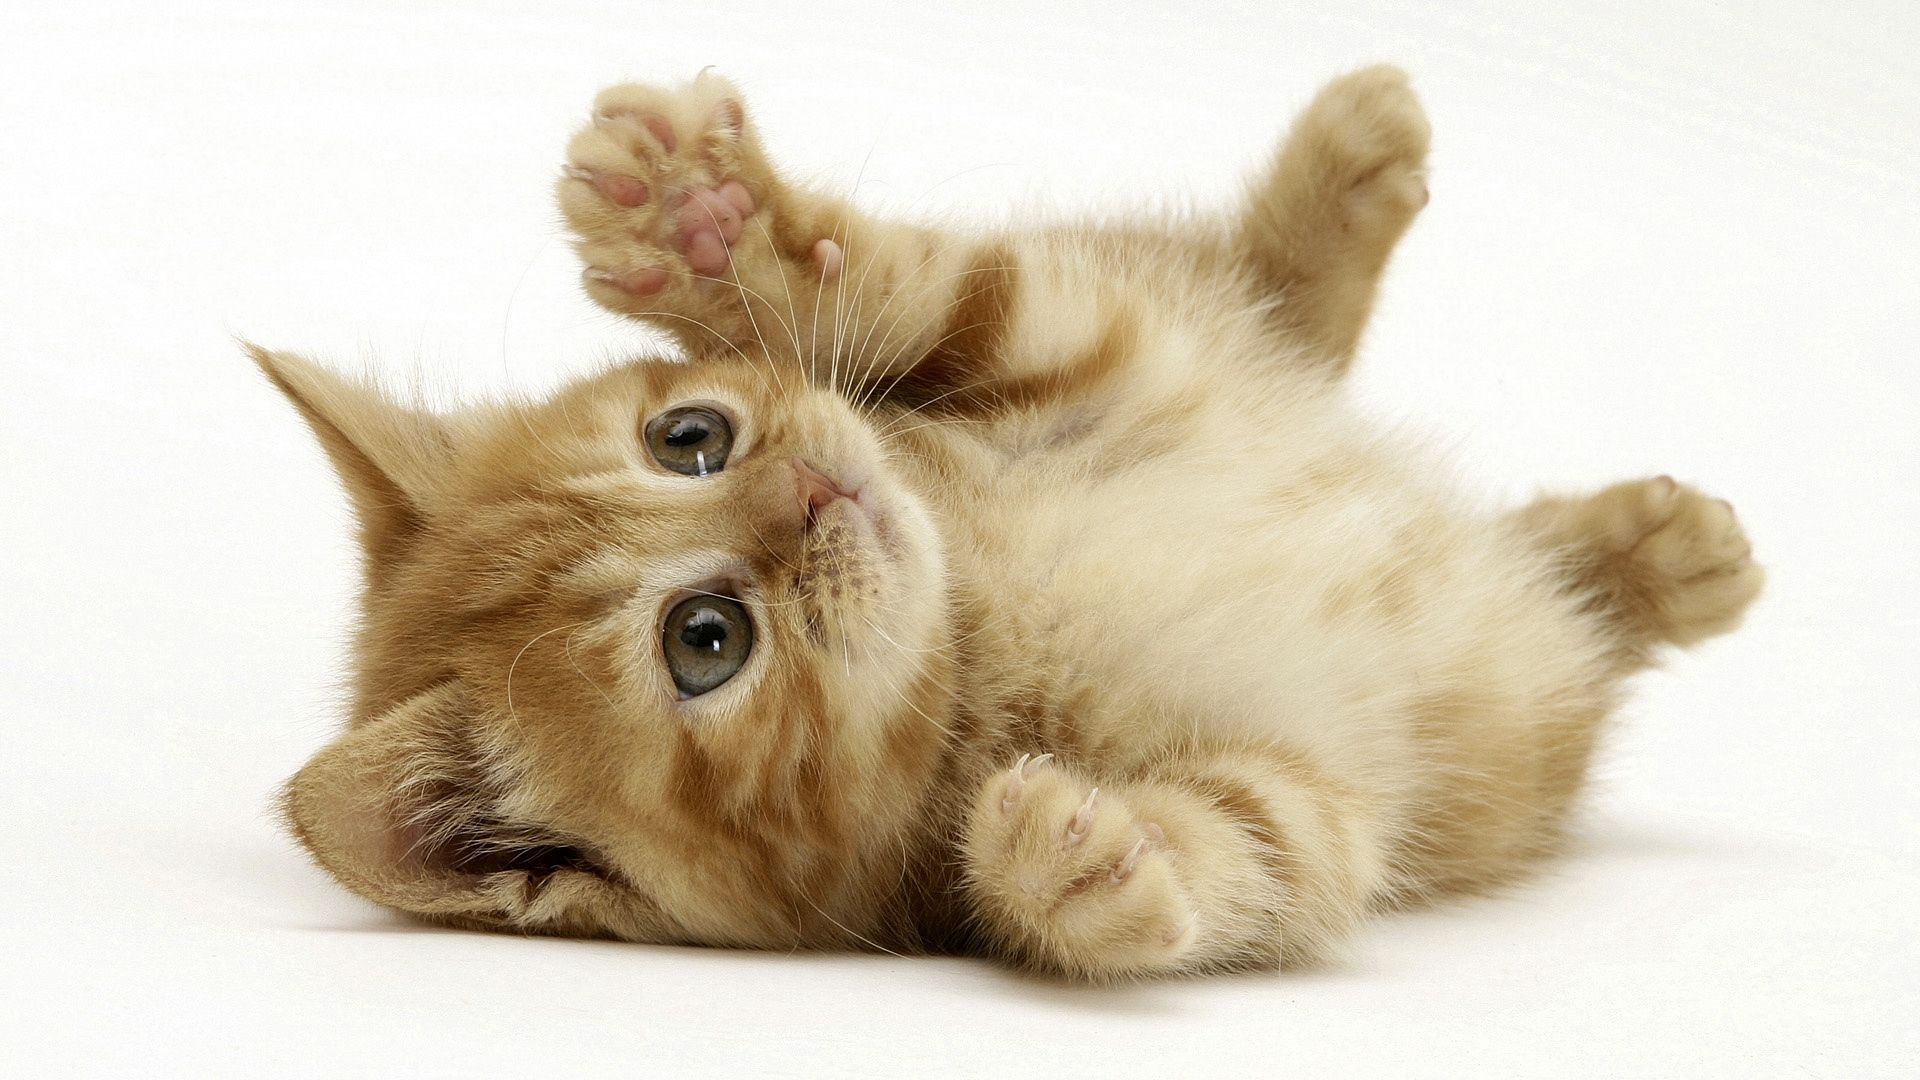 69505 download wallpaper Animals, Kitty, Kitten, To Lie Down, Lie, Playful, Paw screensavers and pictures for free